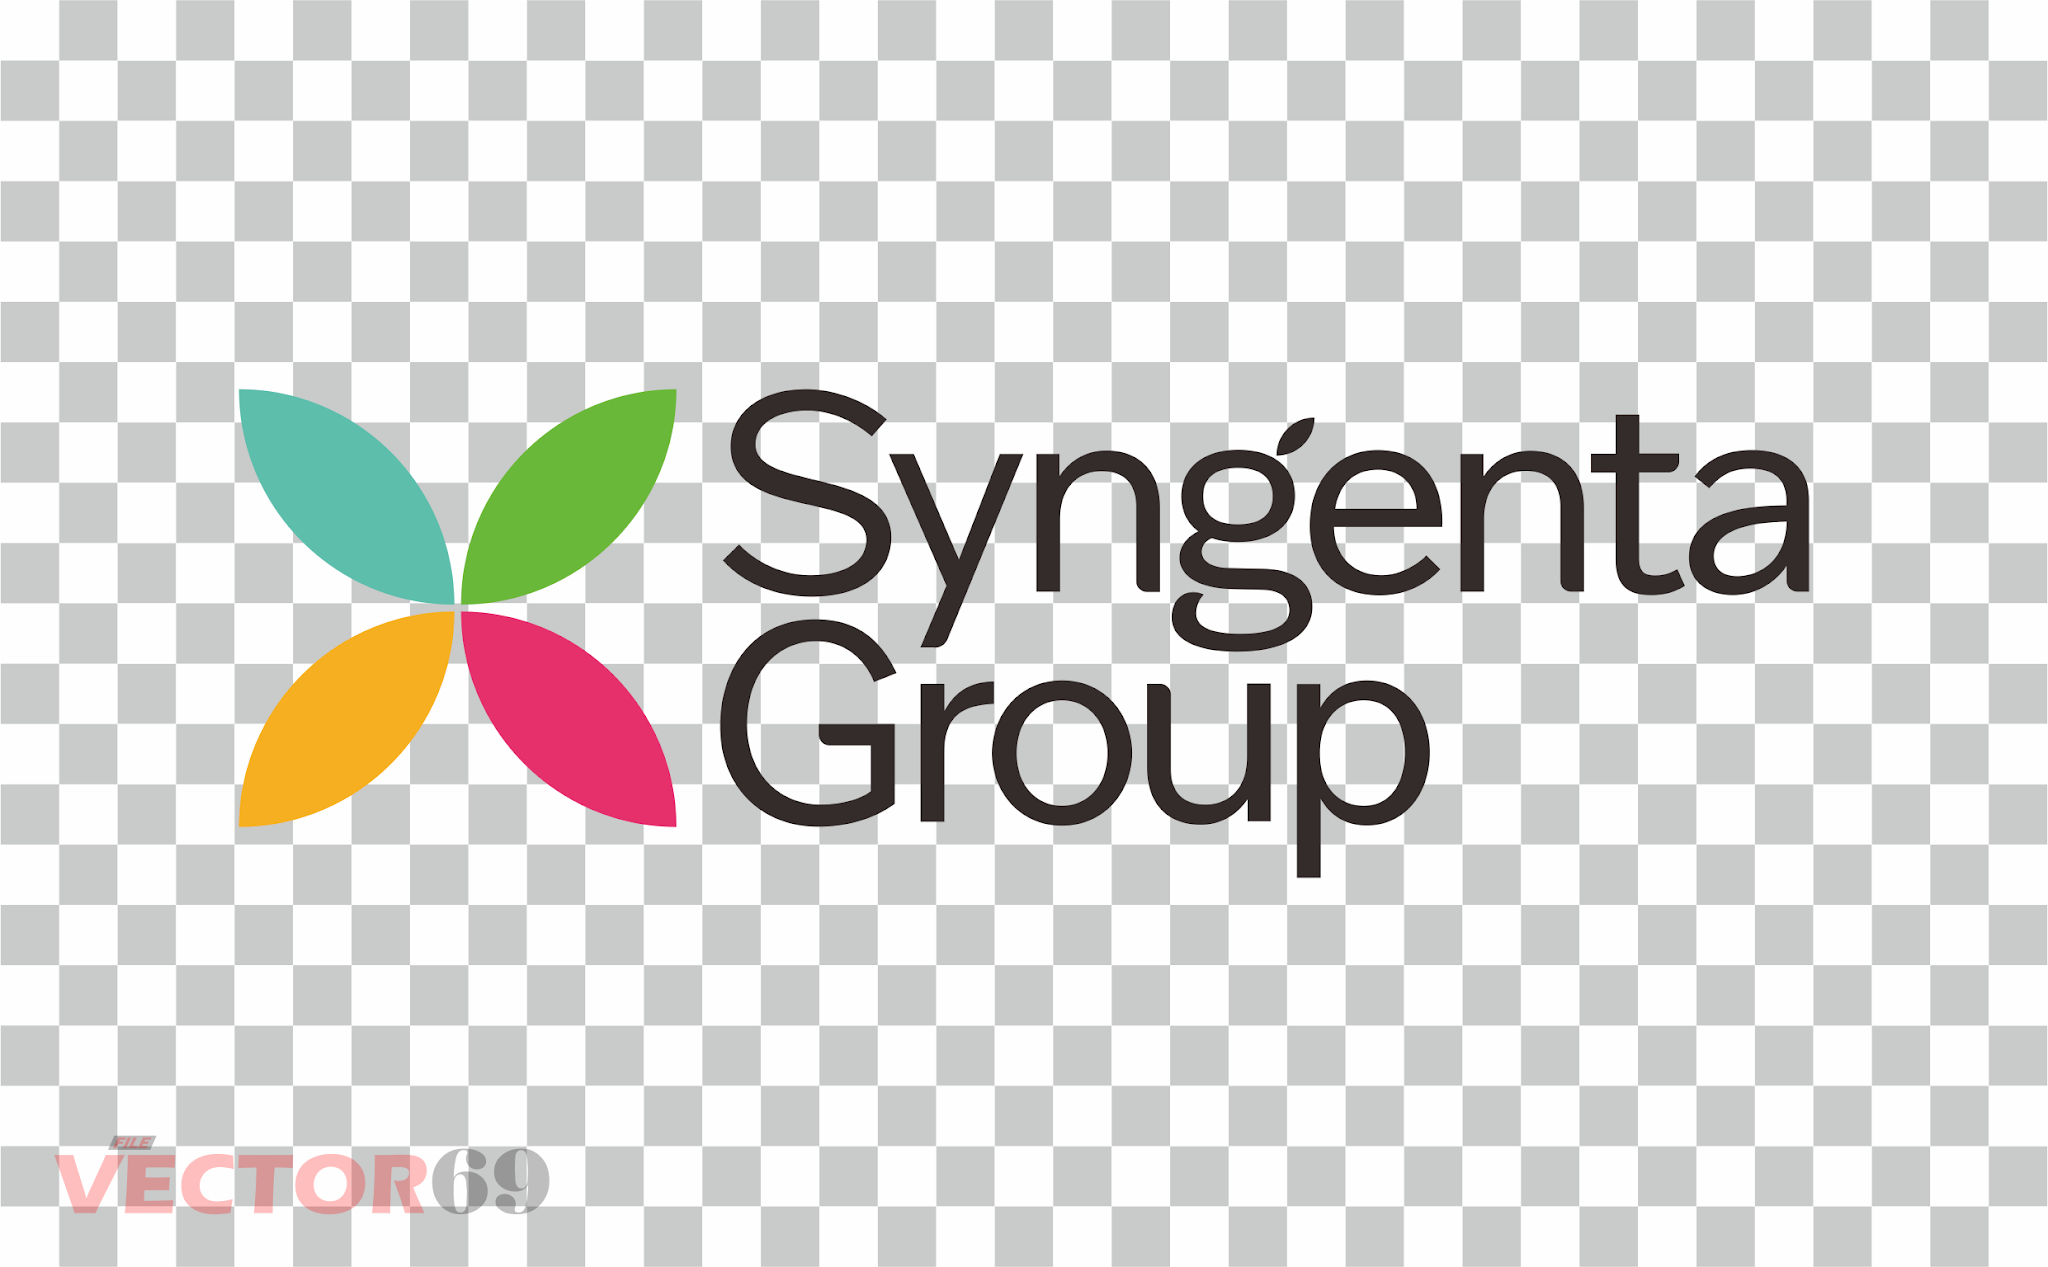 Syngenta Group Logo - Download Vector File PNG (Portable Network Graphics)